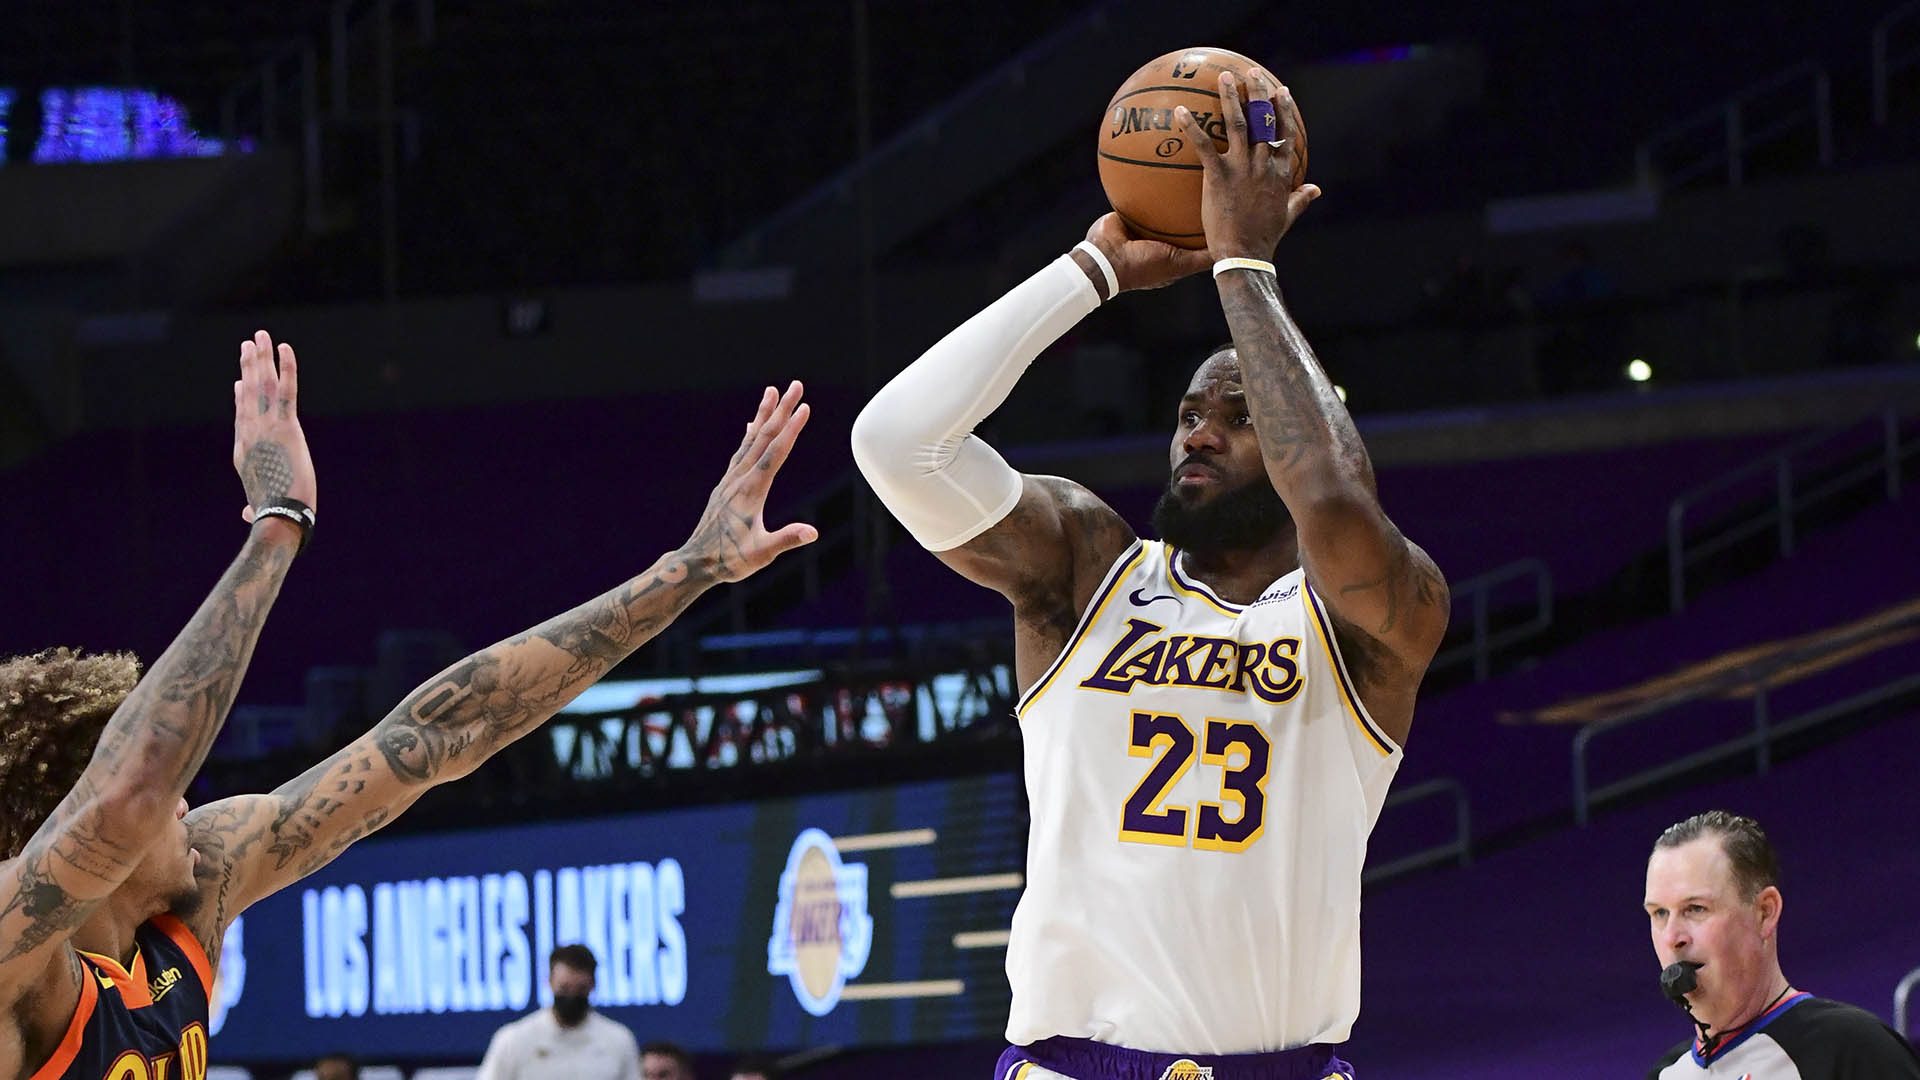 Lakers race out to quick start, demolish Warriors